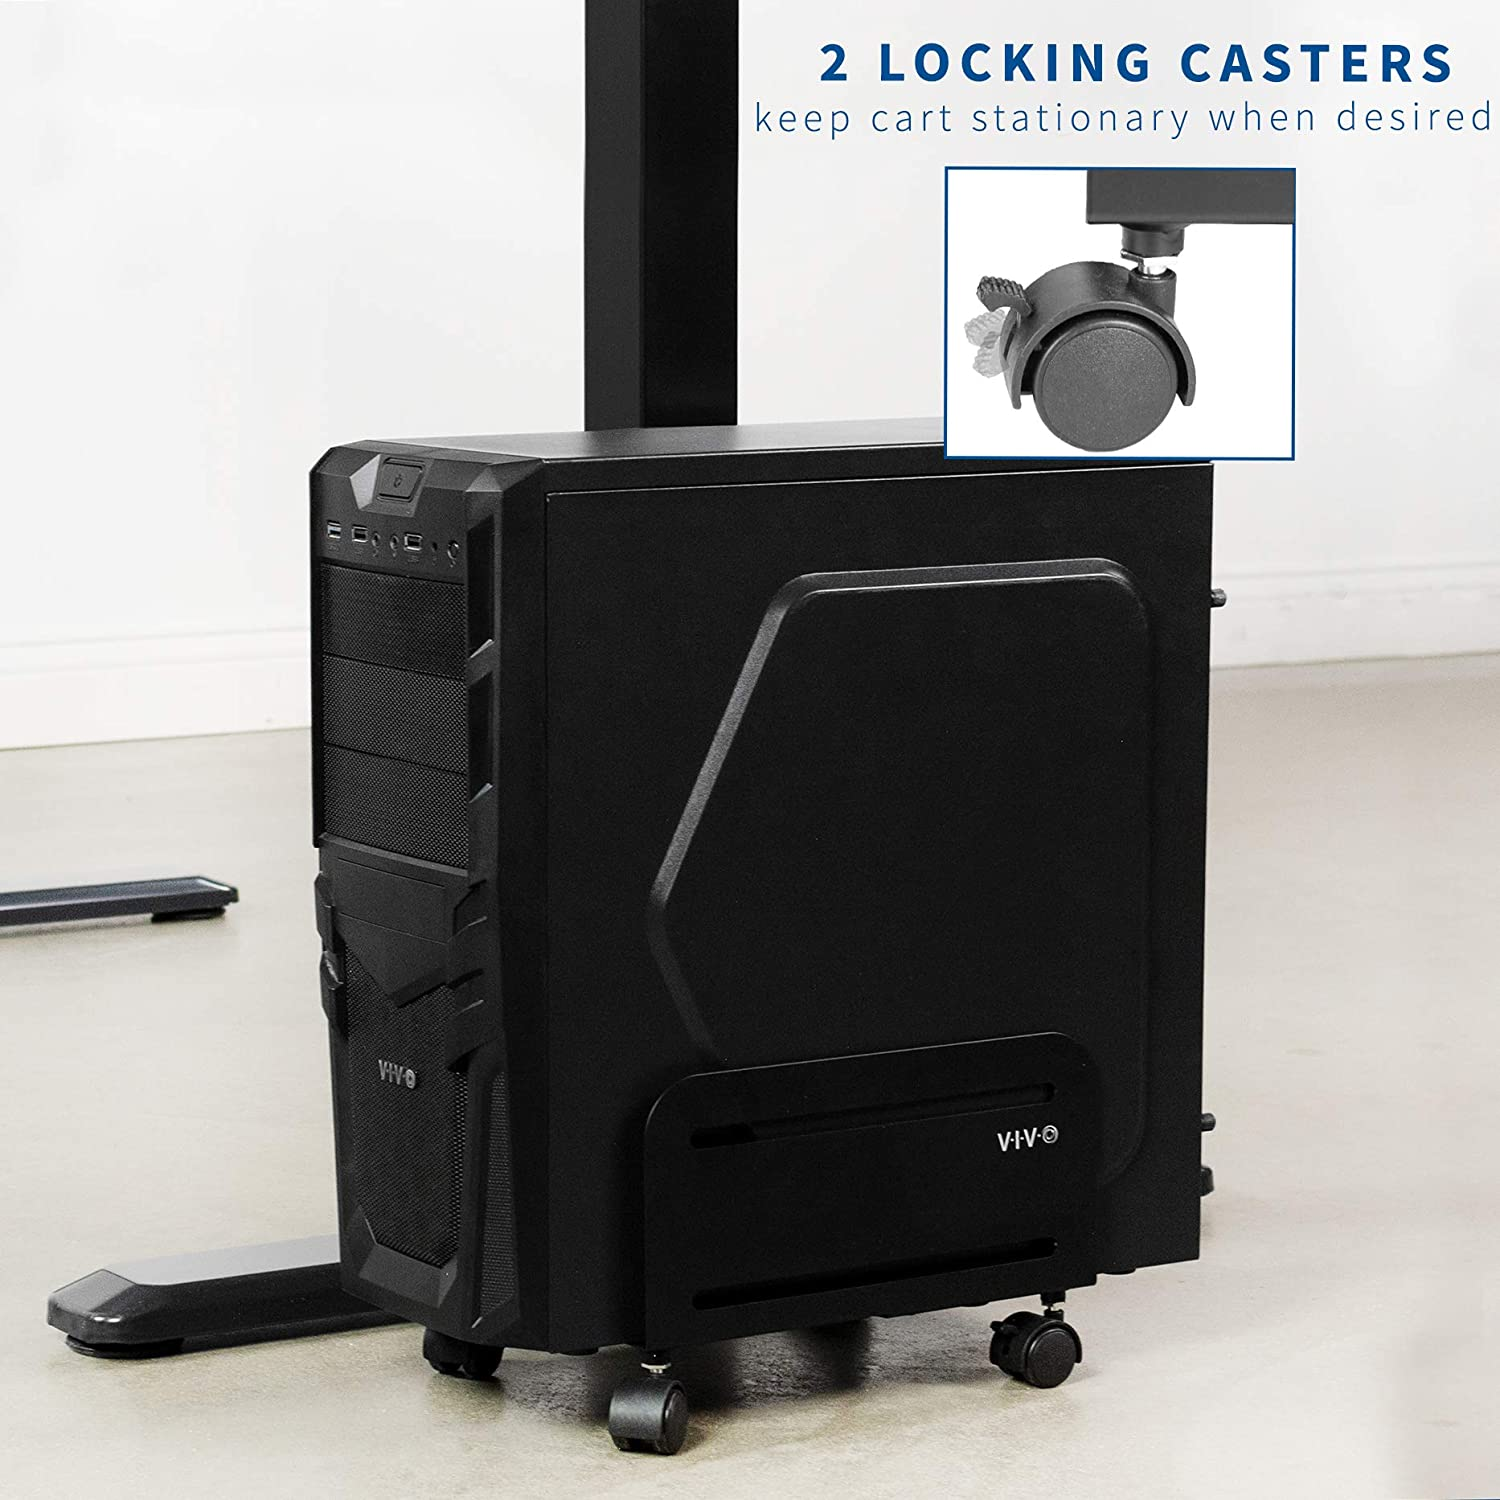 VIVO Black Computer Tower Desktop ATX-Case, CPU Steel Rolling Stand, Adjustable Mobile Cart Holder with Locking Caster Wheels (CART-PC01) : Office Products